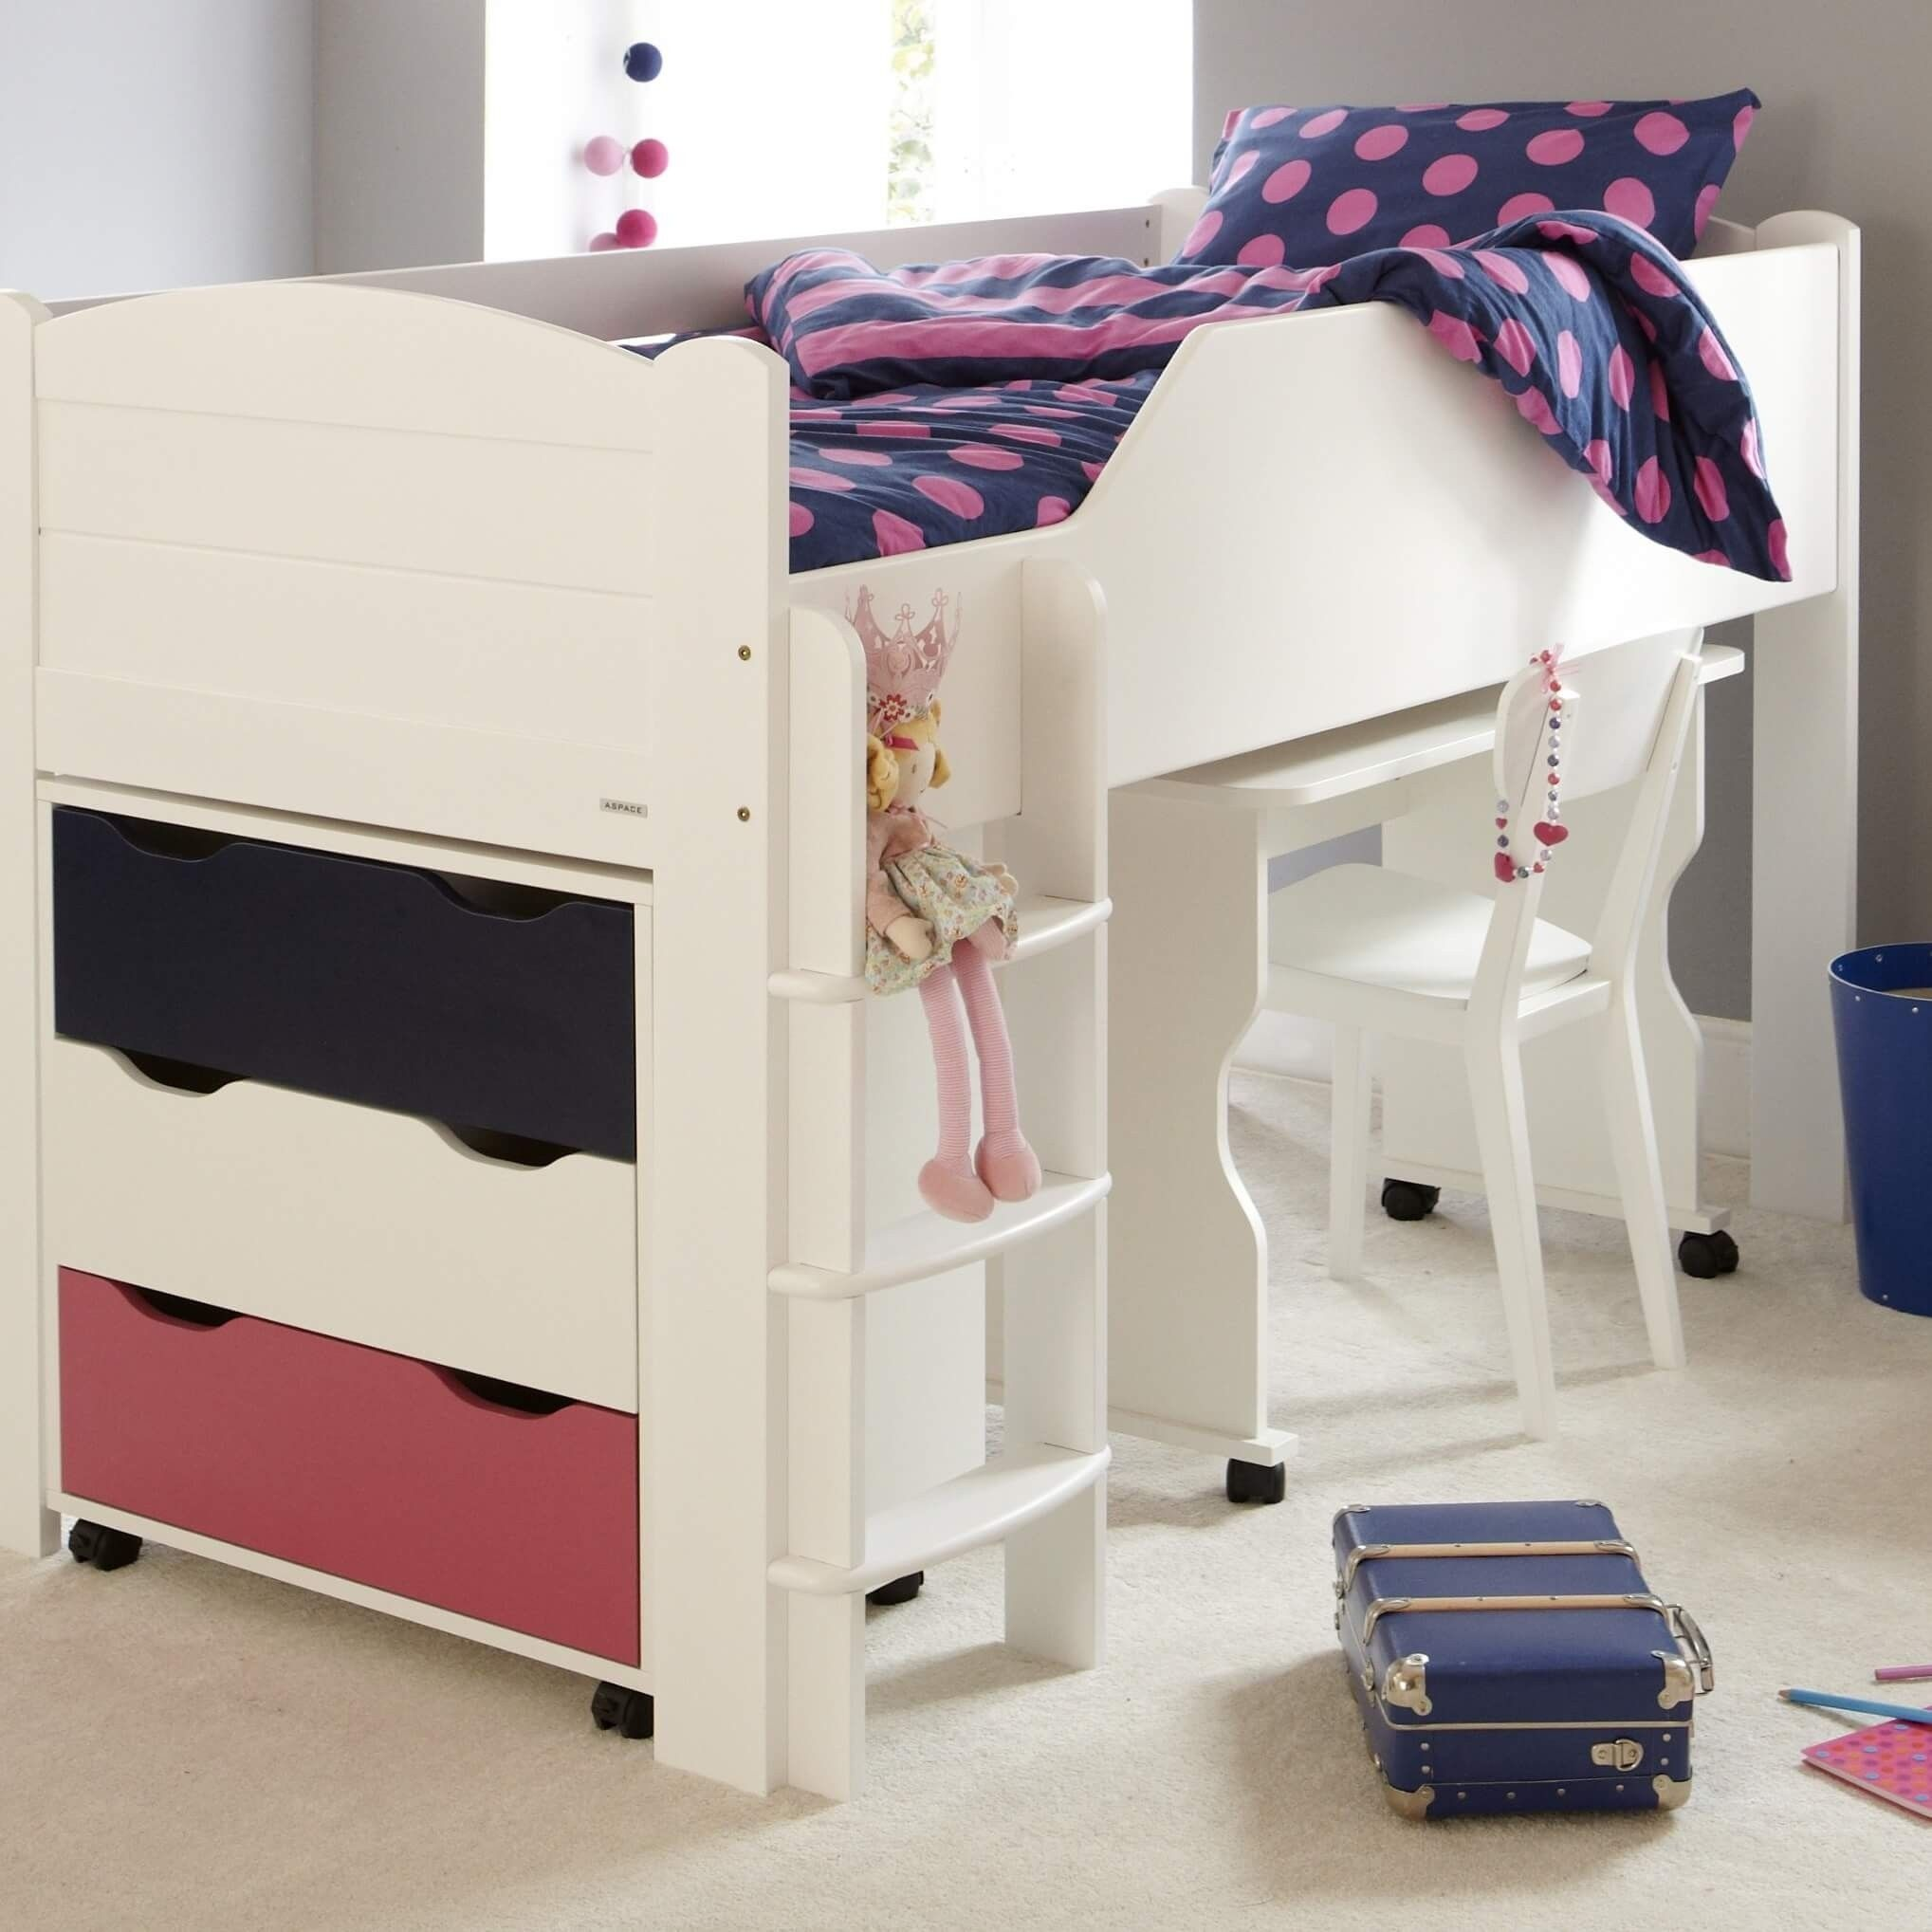 Juicy Fruits Mid Sleeper Bed Left Hand Ladder Silk White In 2020 Mid Sleeper Bed